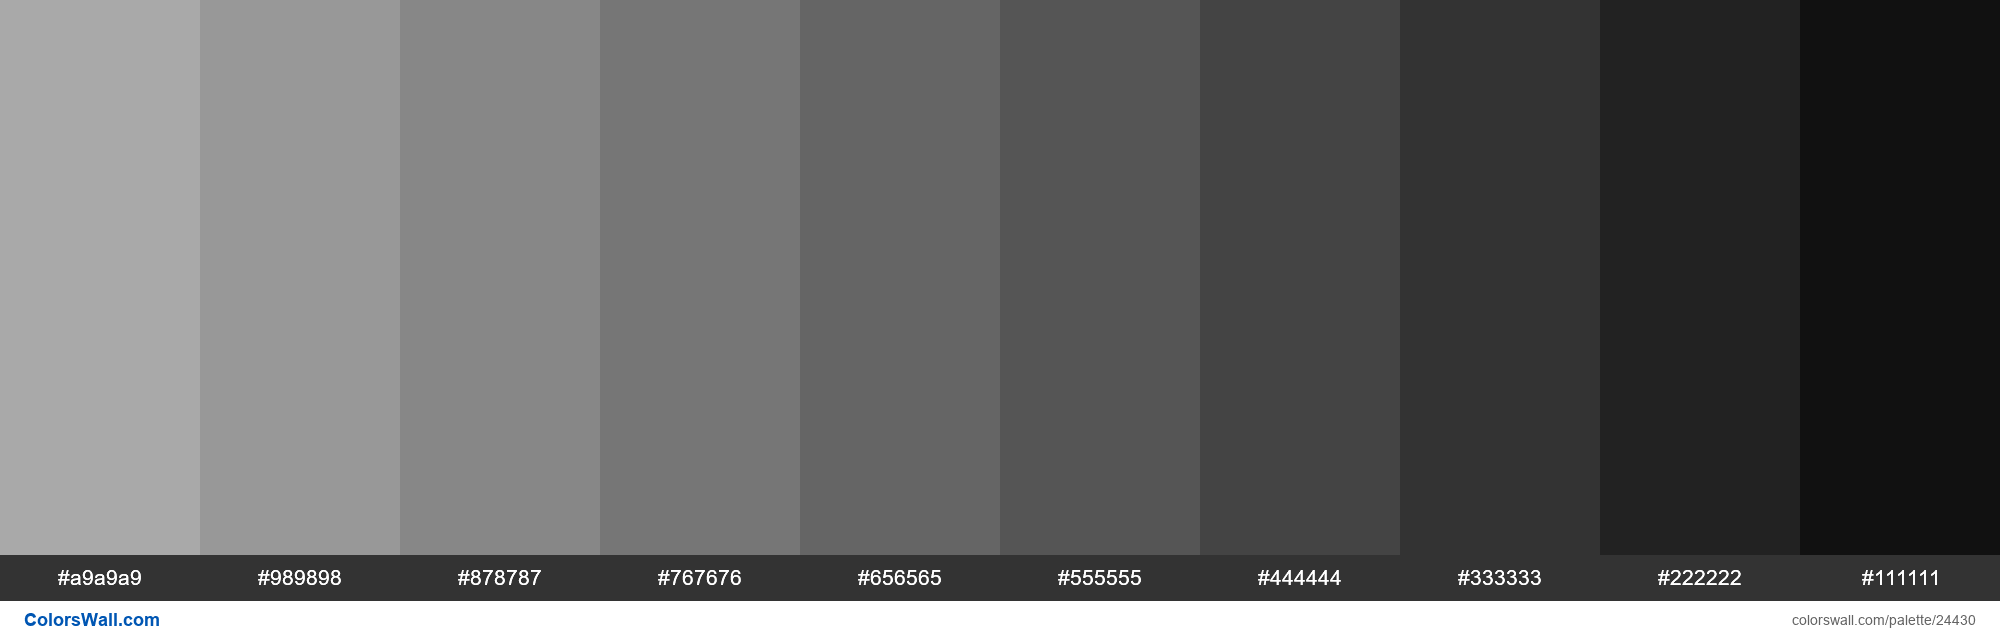 Shades of Dark Gray #A9A9A9 hex color - #24430